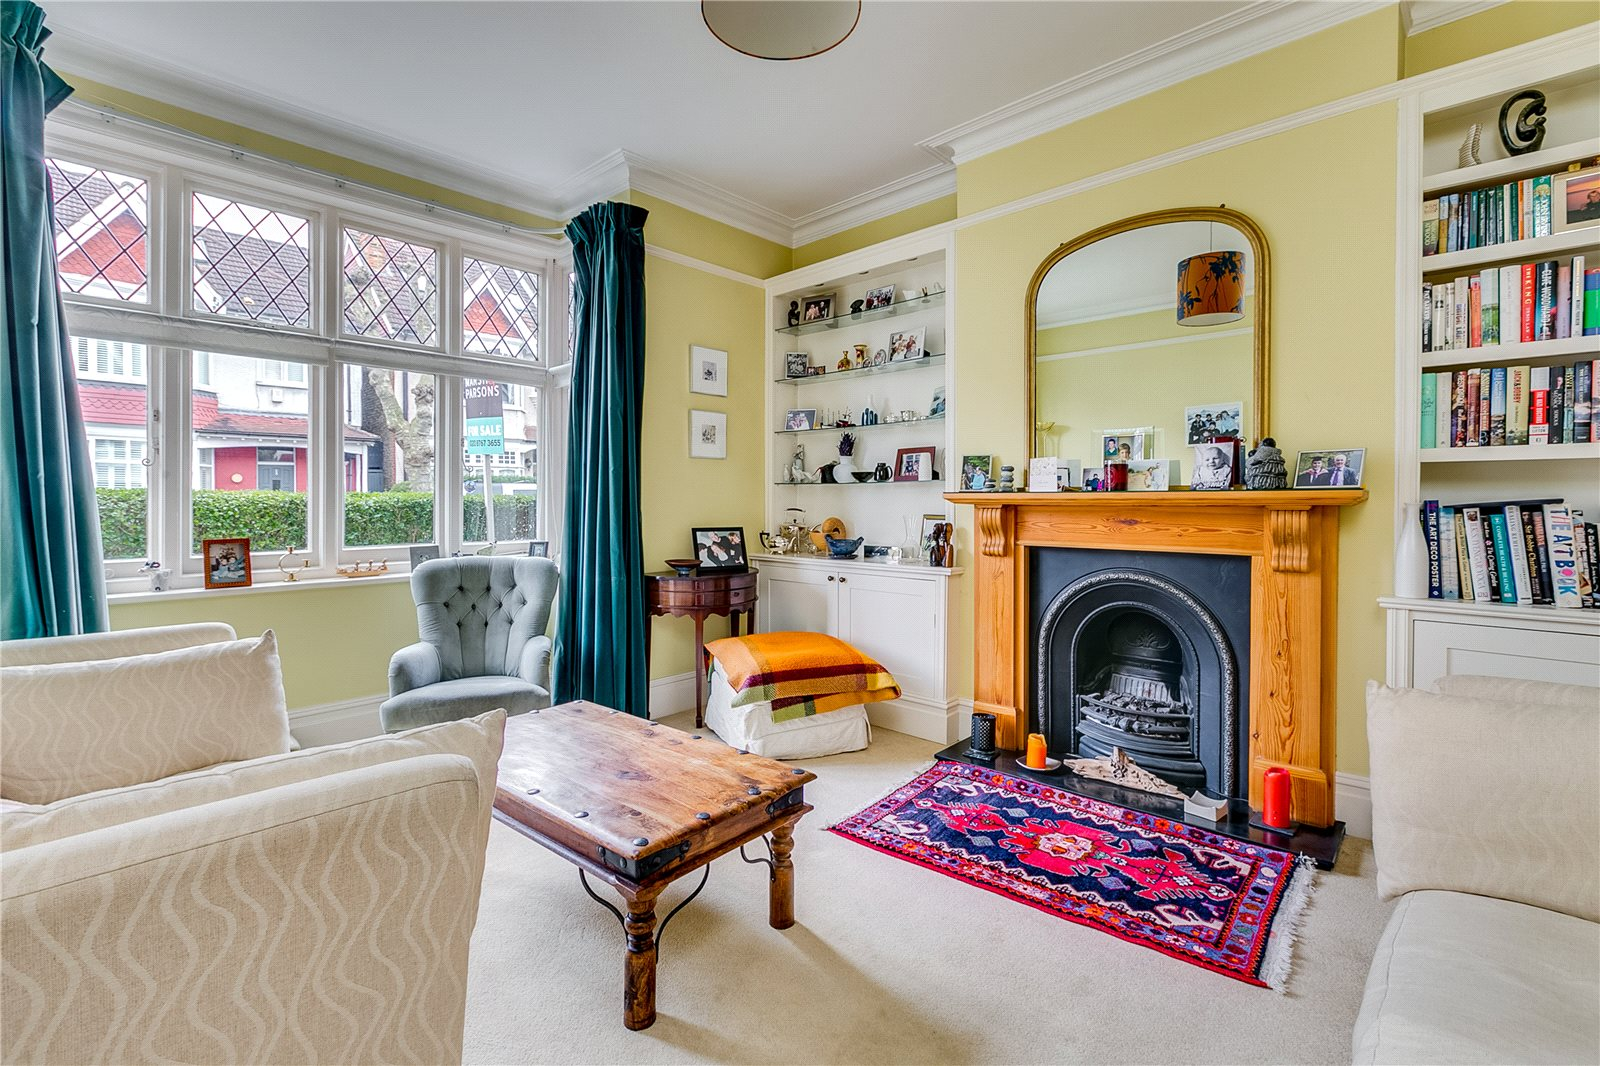 A fresh, brightly coloured rug draws attention to this fireplace's striking features.